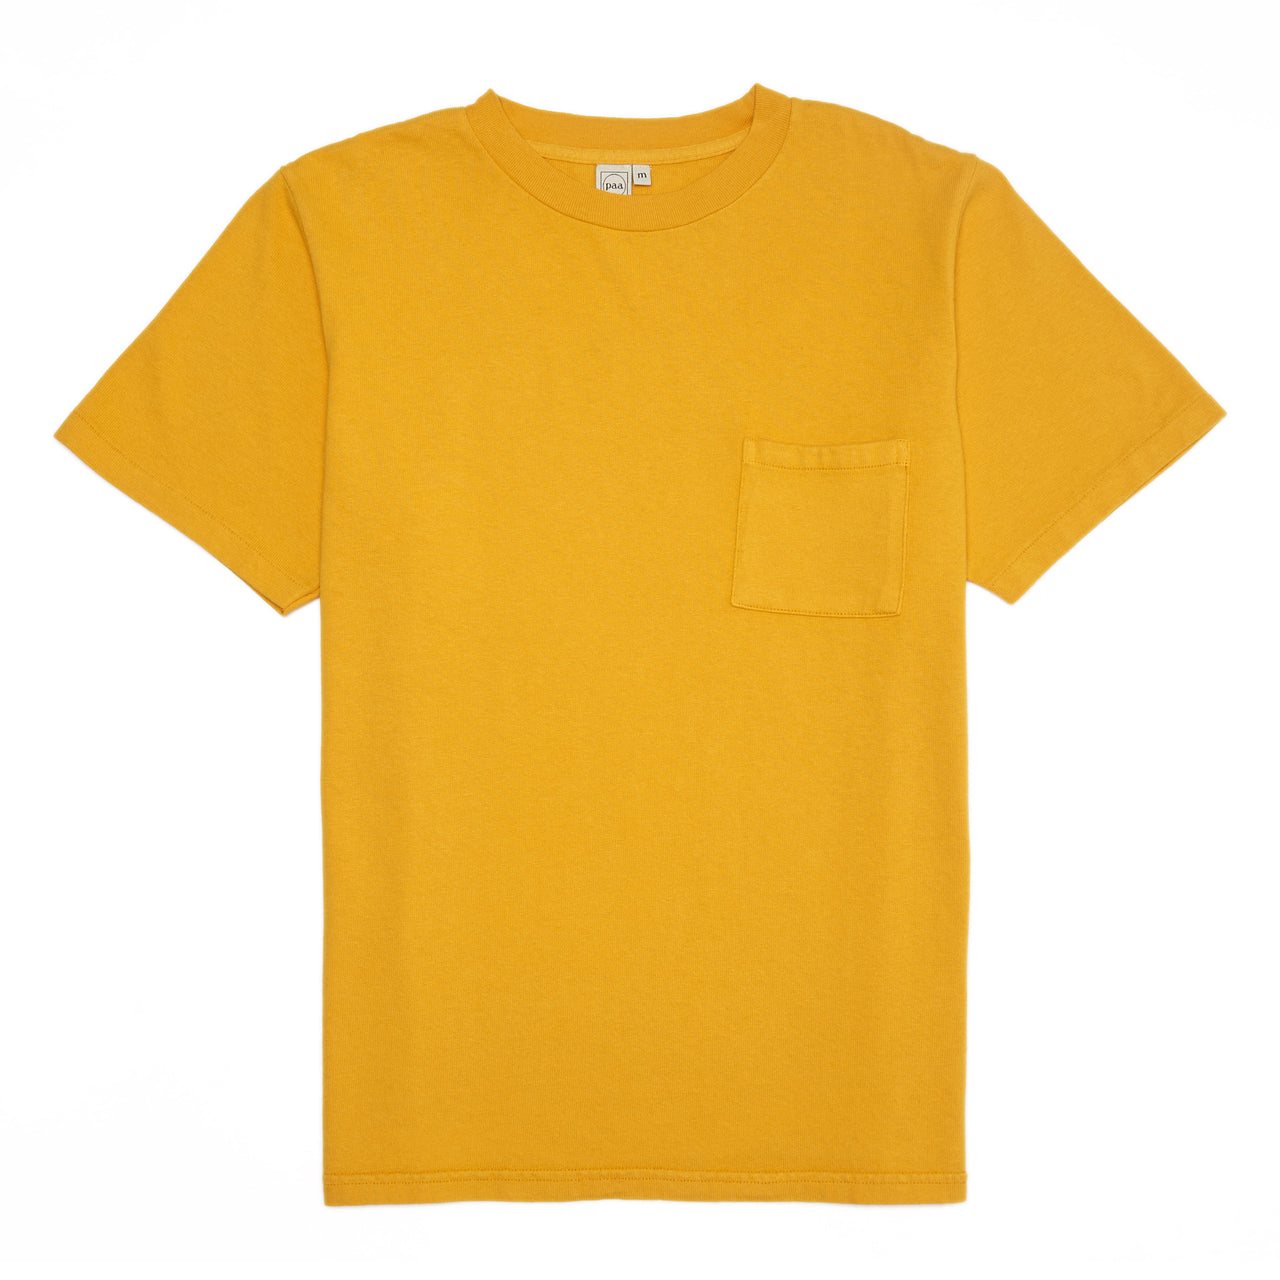 SS Pocket Tee - Golden Yellow